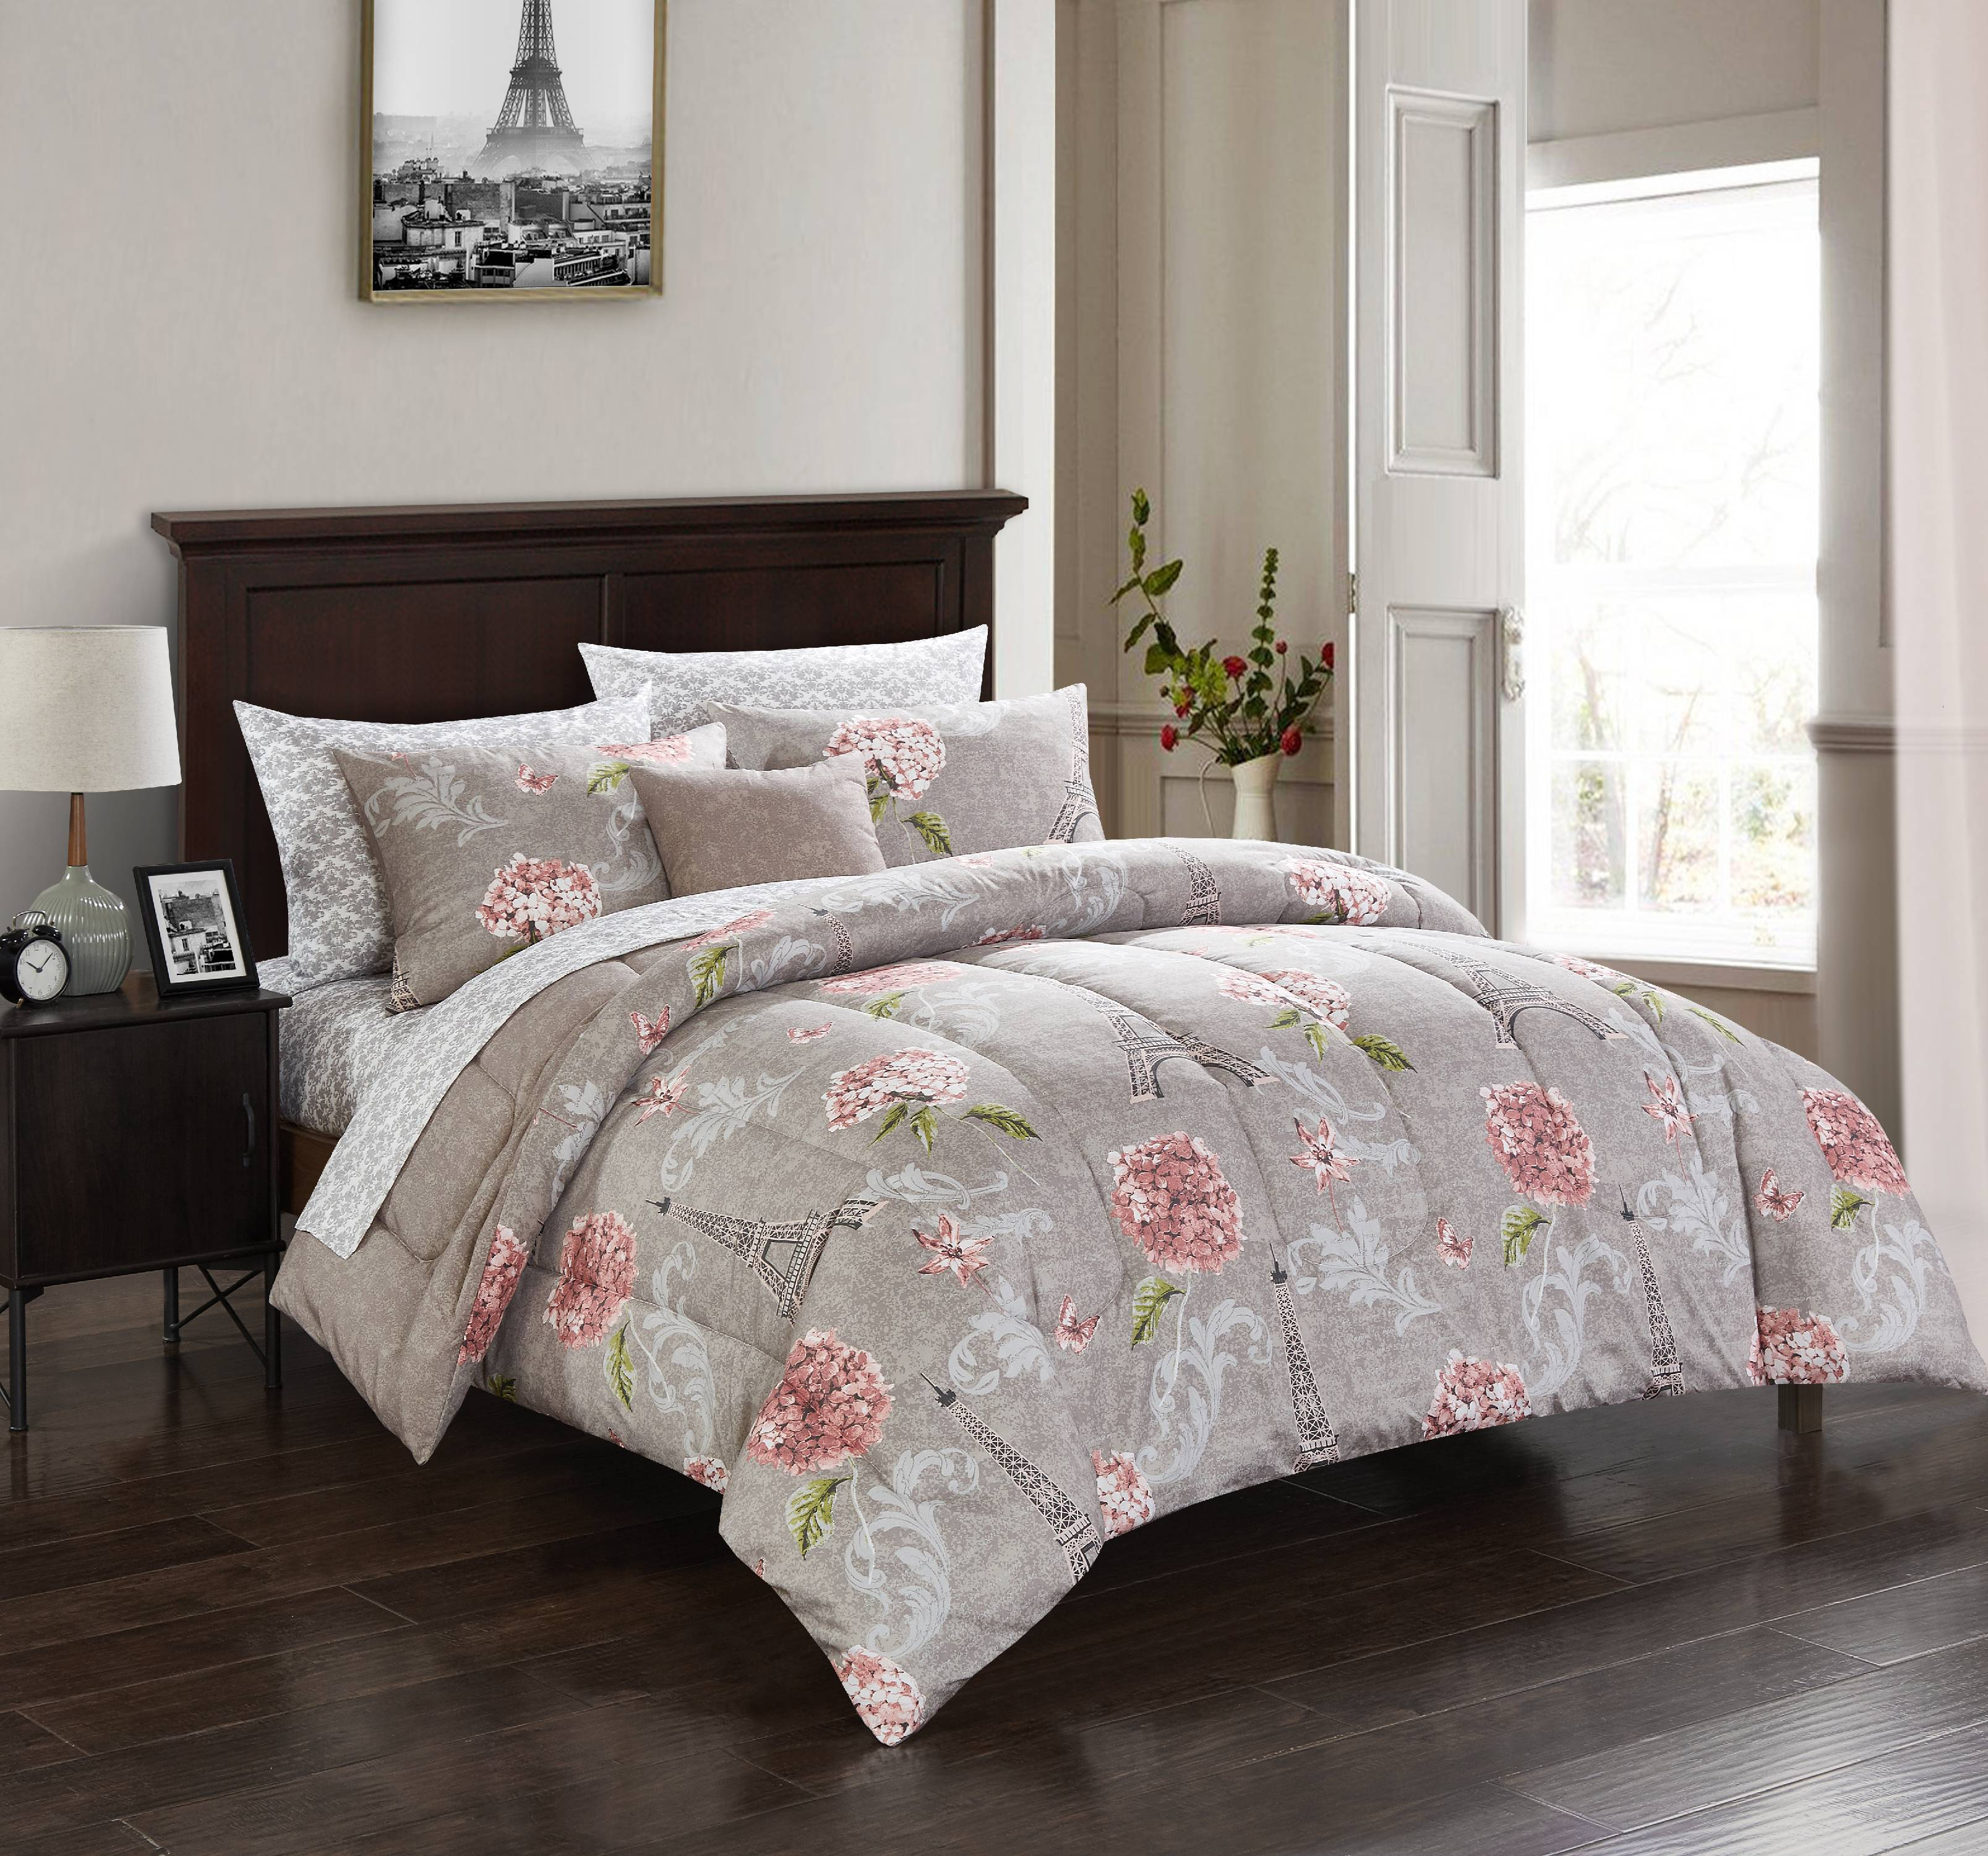 Mainstays Casa Papillion Bed In A Bag